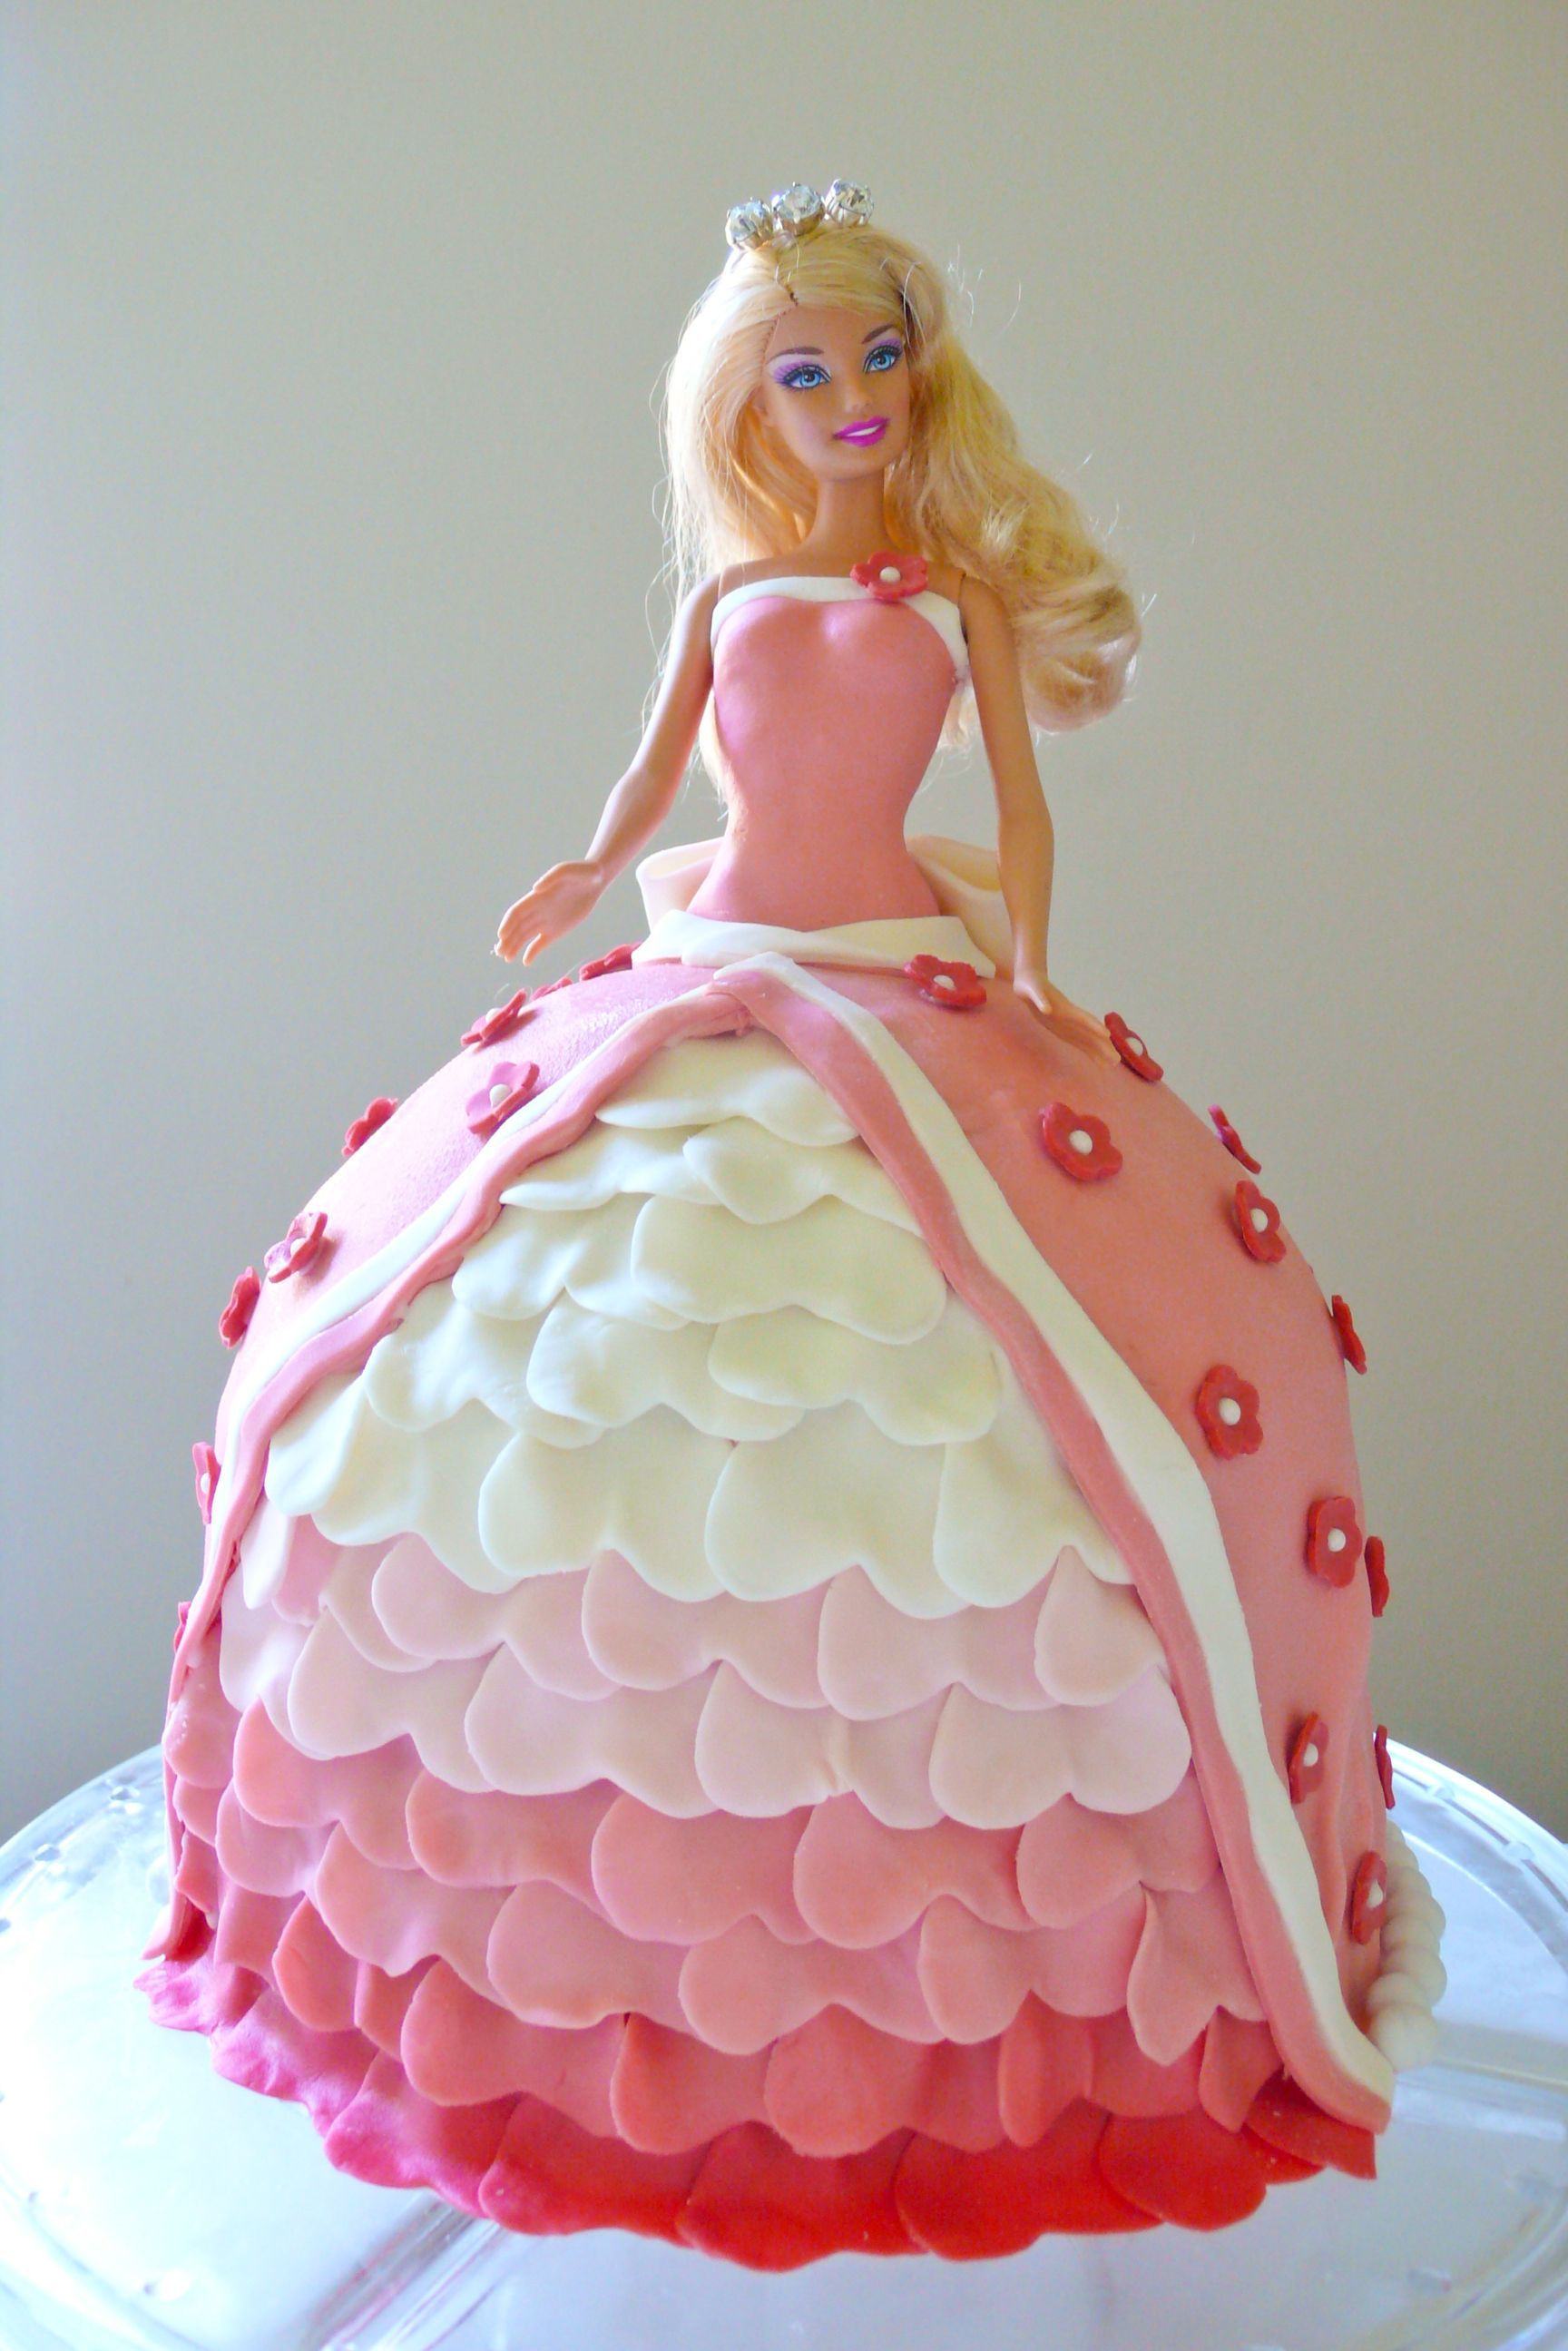 Cake Decoration Doll : Princess Doll Cake Tutorial Decorating Tips And Techniques Desserts To make Pinterest Doll ...